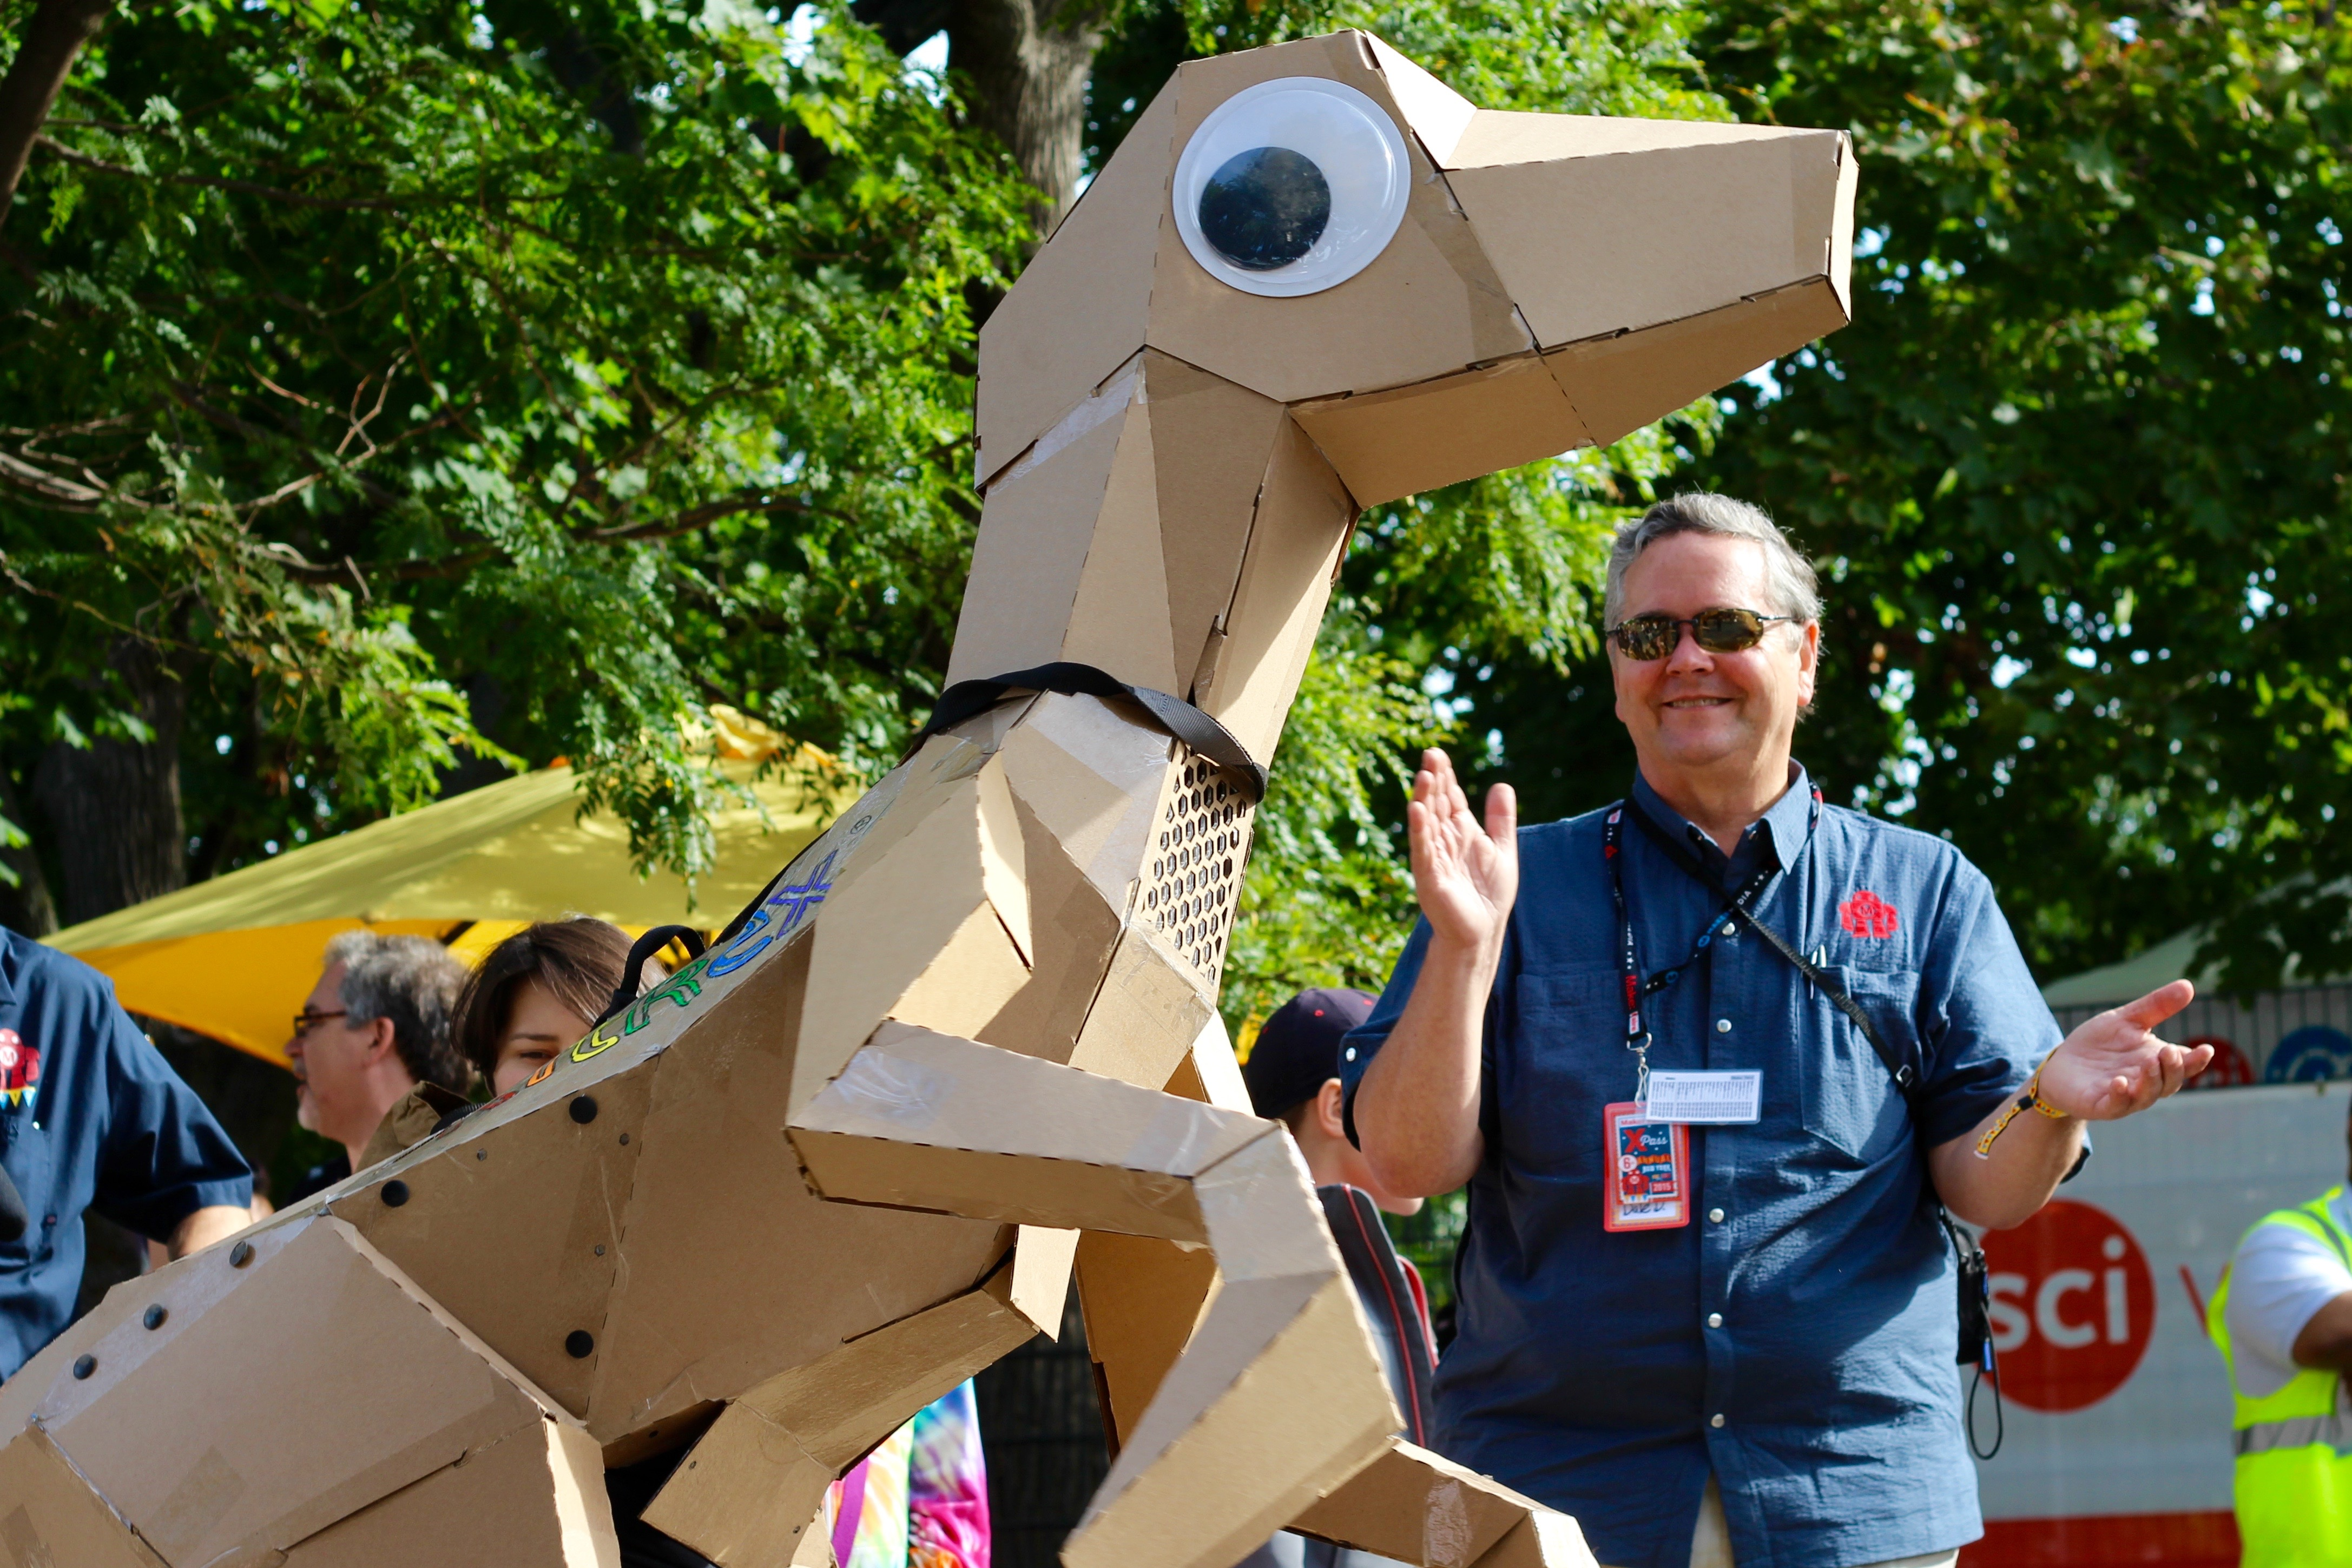 Makers Love Cardboard: 8 Awesome Projects from Maker Faire Prove It